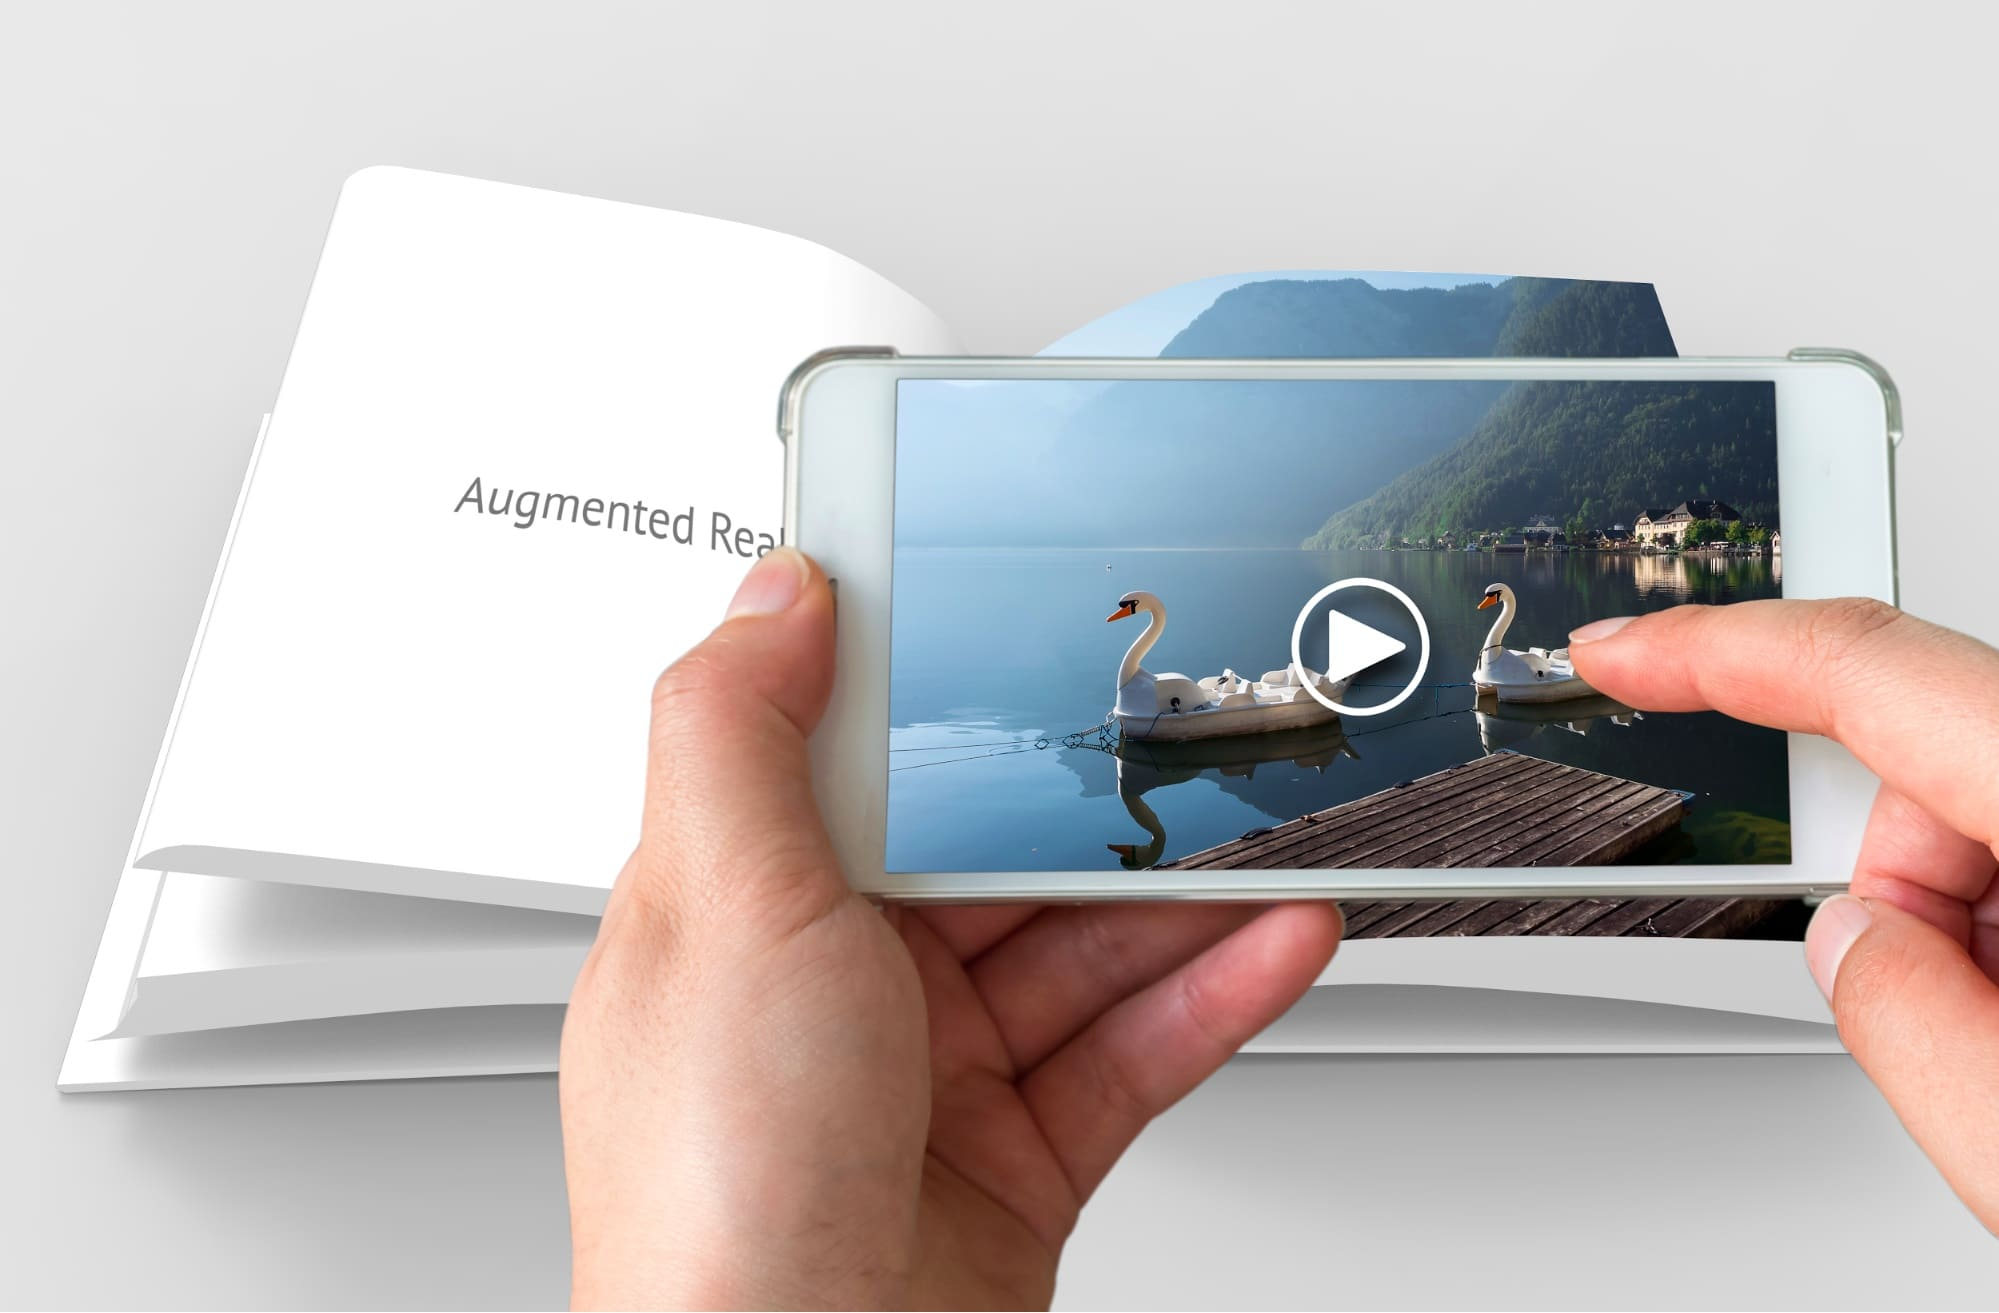 Augmented Reality Defined